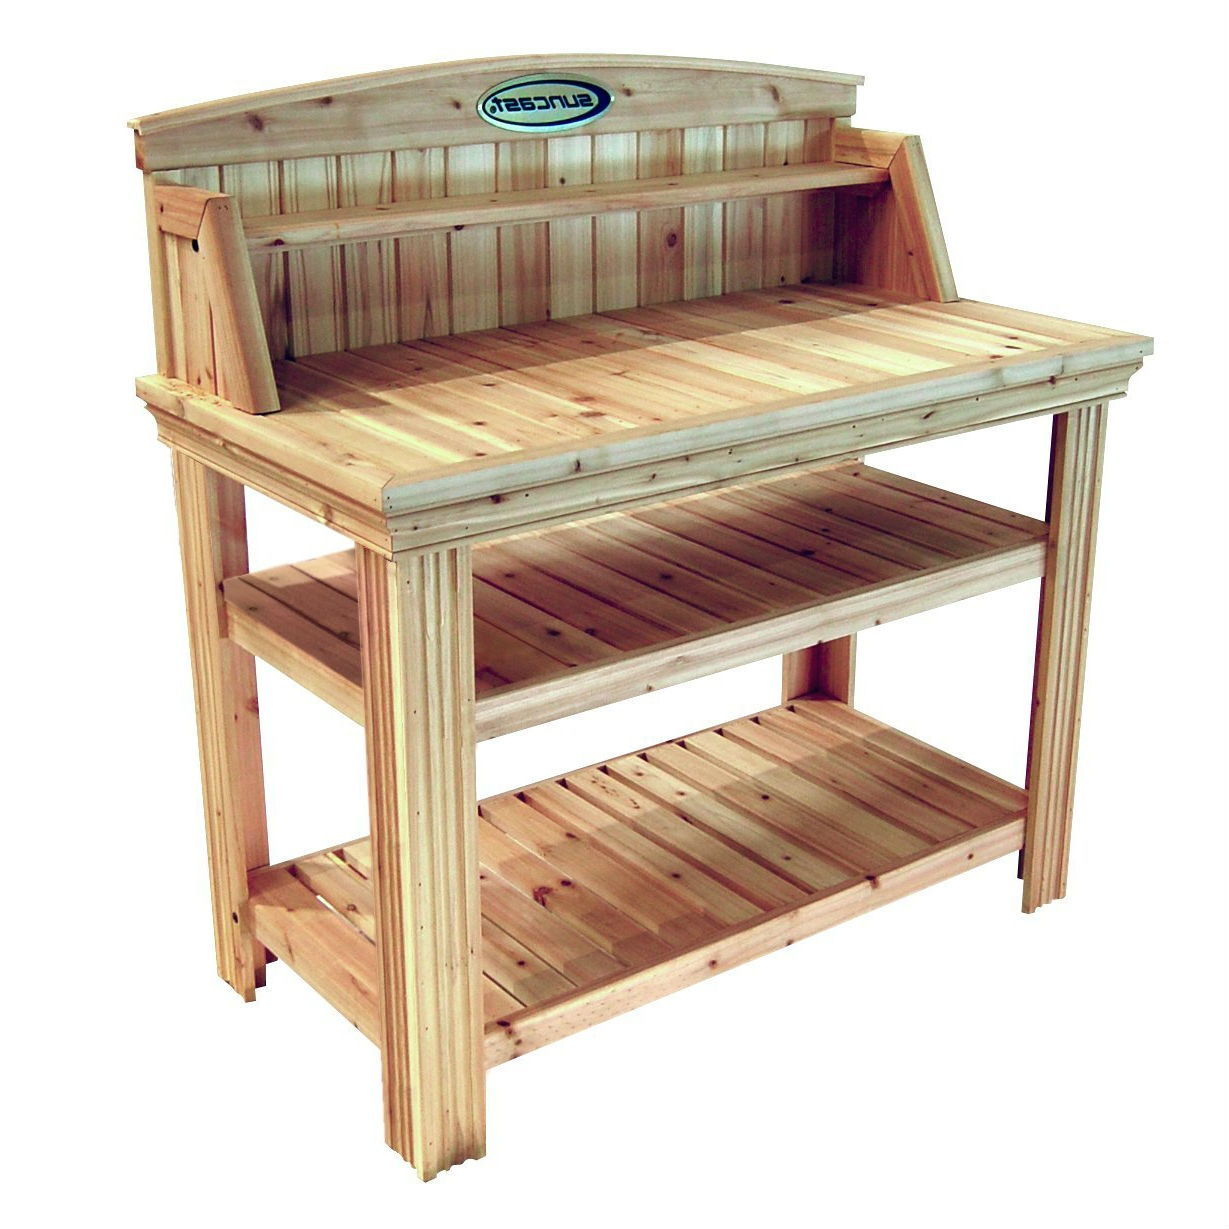 natural cedar wood potting bench garden work table with shelves - Garden Work Bench